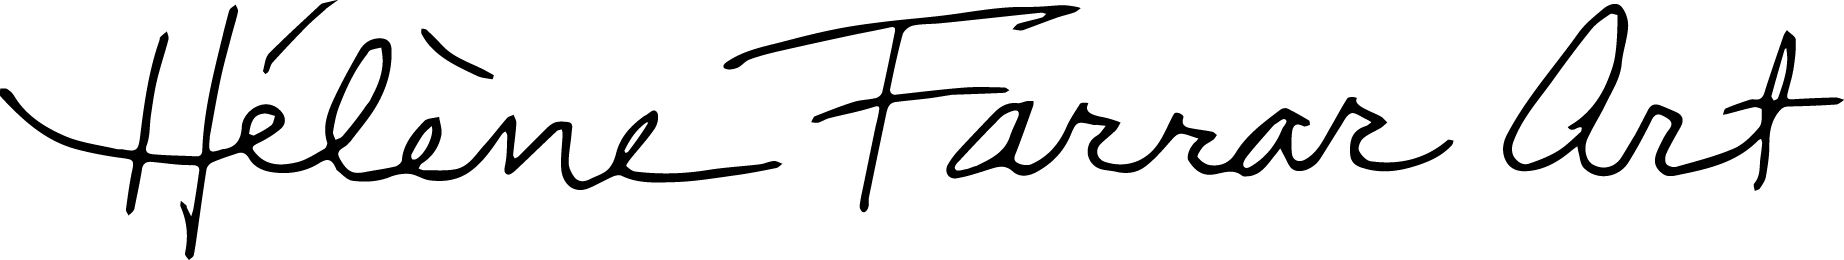 Helene SIgnature copy.png